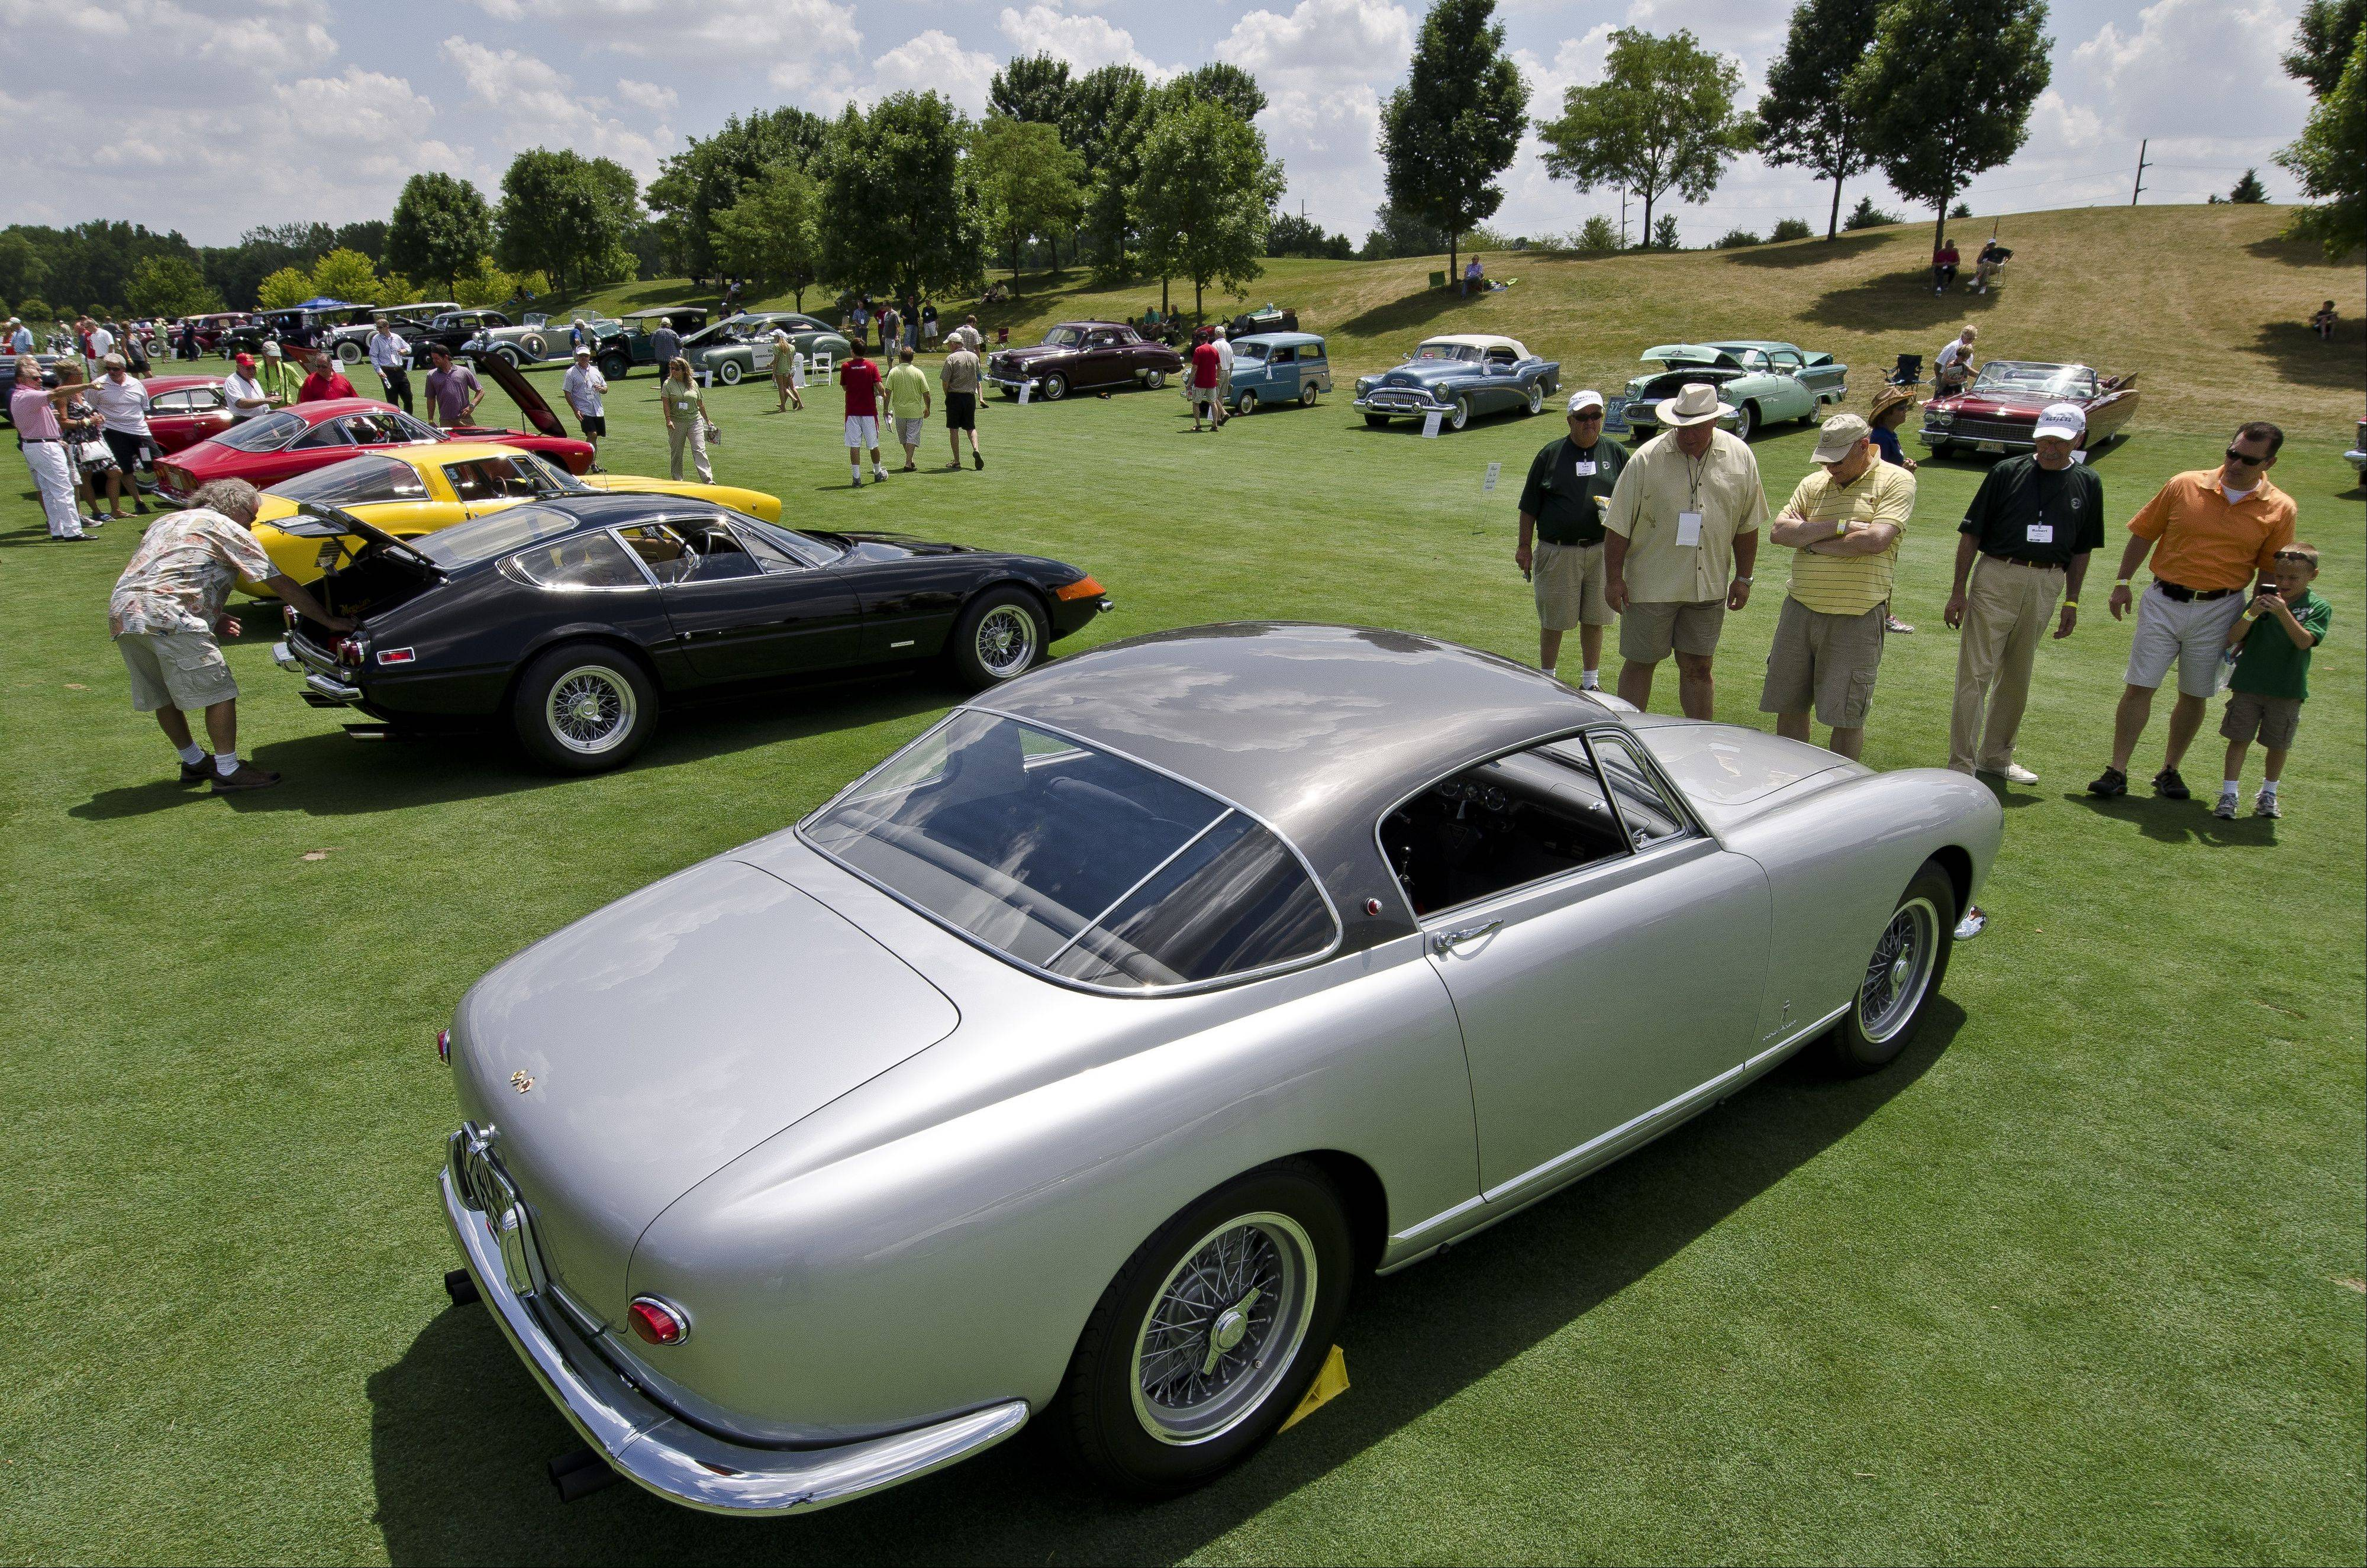 More than 130 collector cars, trucks and motorcycles were selected for this year�s Barrington Concours D�Elegance.